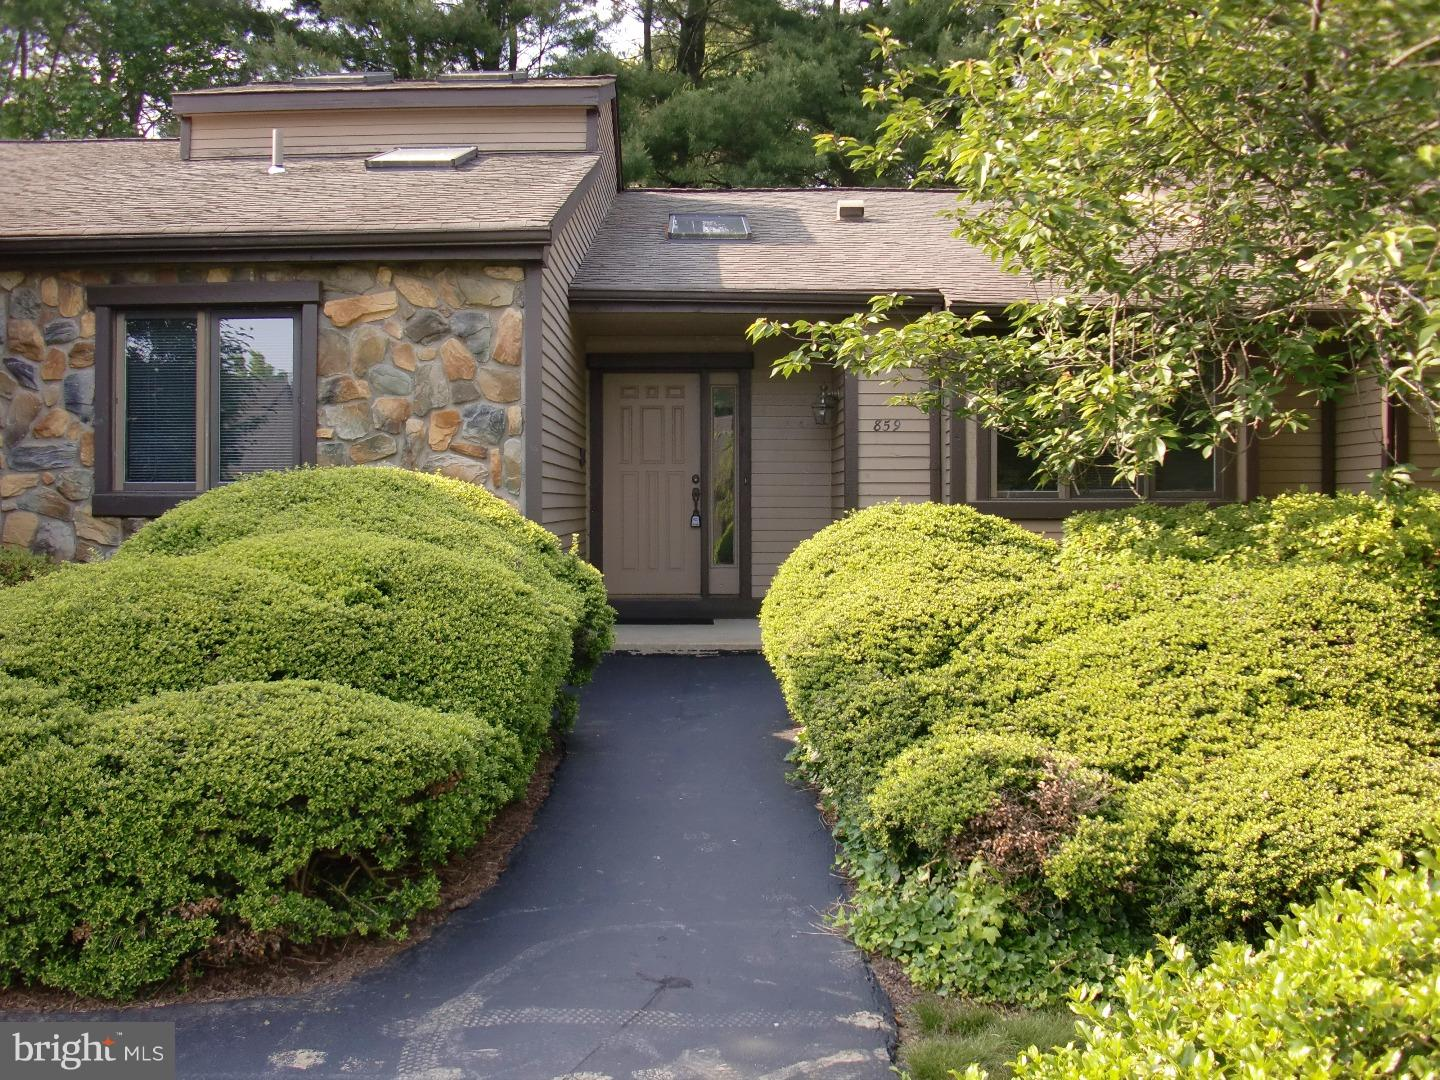 859 Jefferson Way West Chester, PA 19380